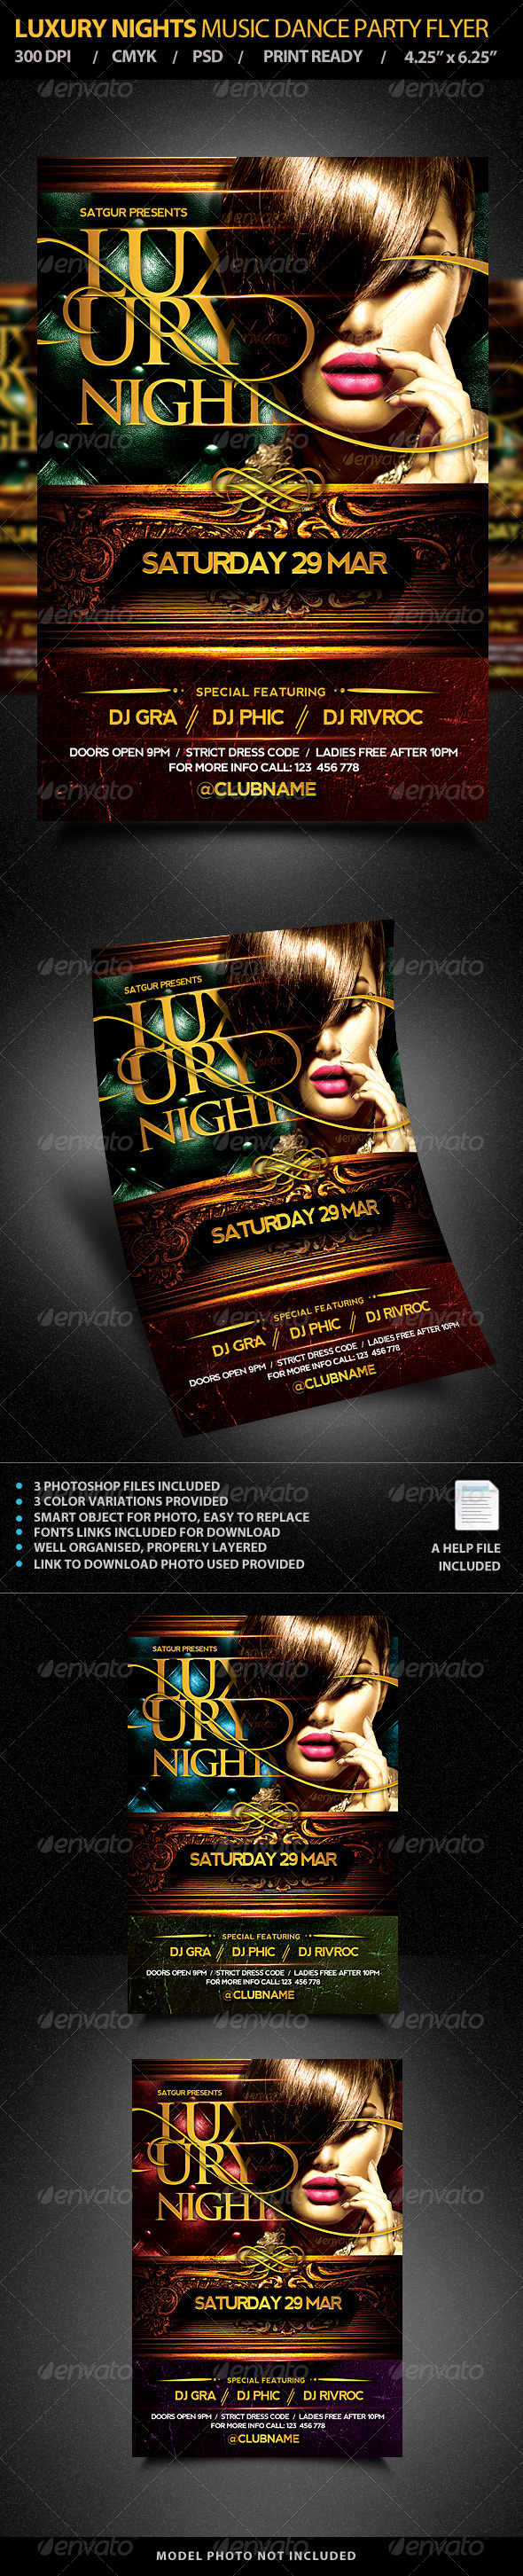 Luxury NightS Party Flyer Template PSD - Clubs & Parties Events